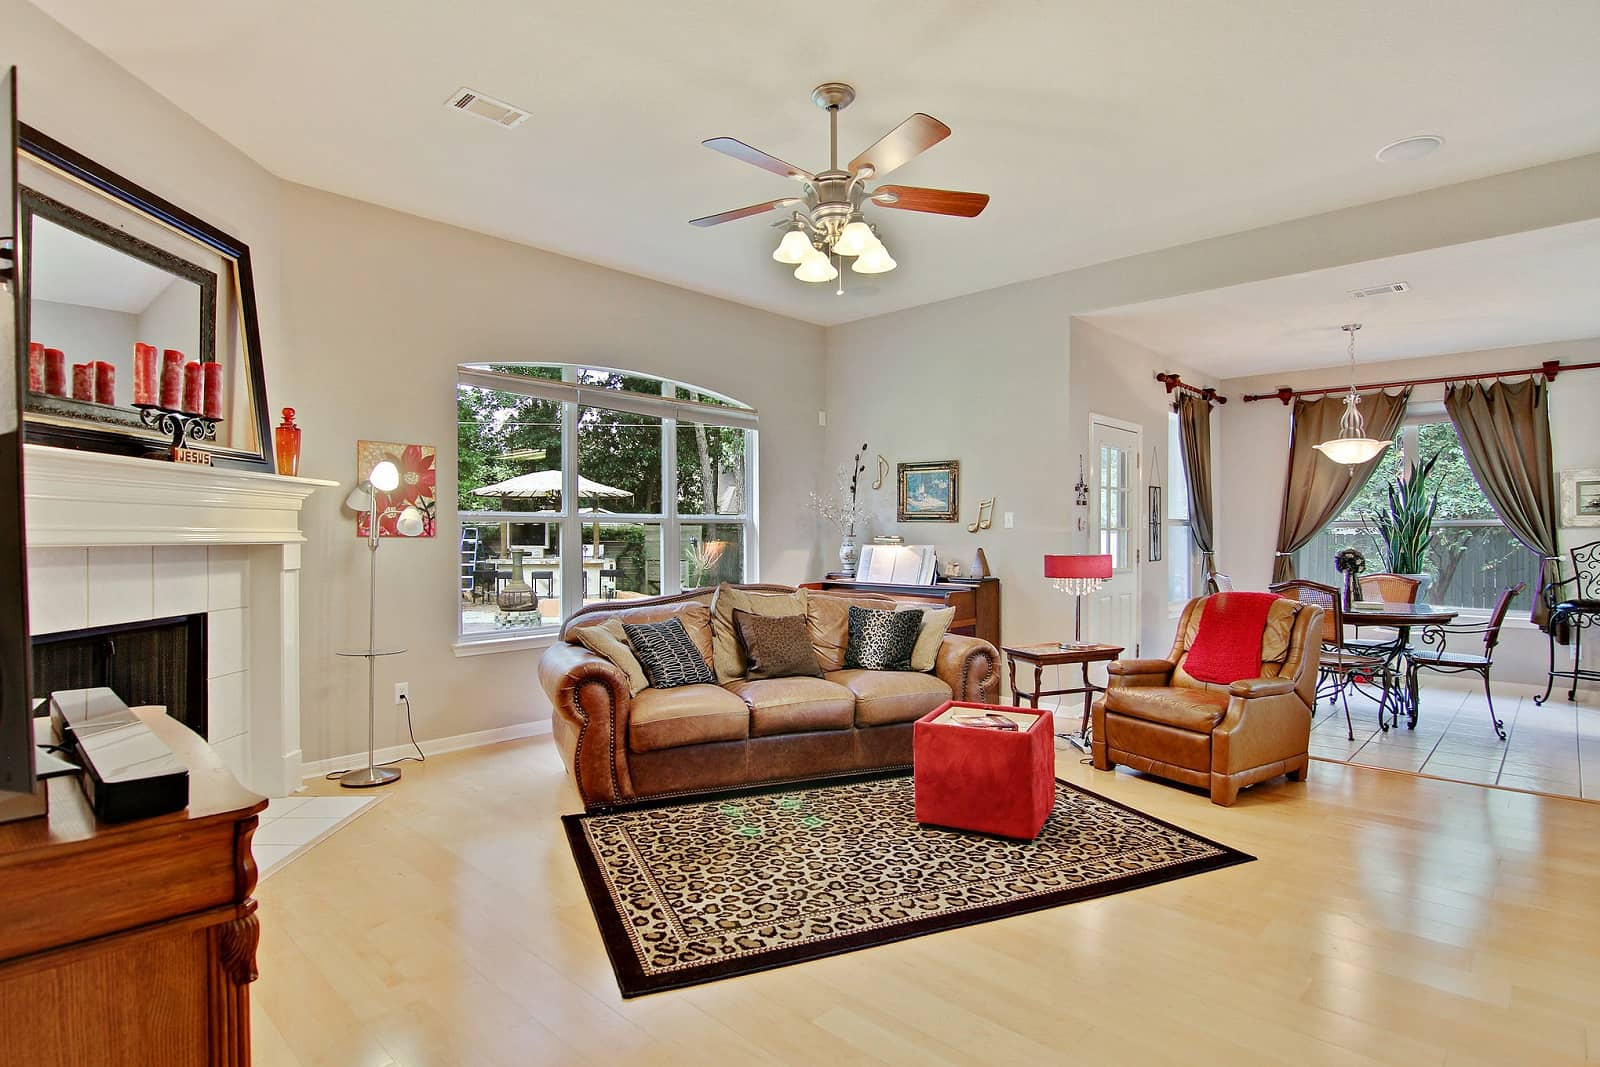 Real Estate Photographers in Conroe - TX - Living Area View